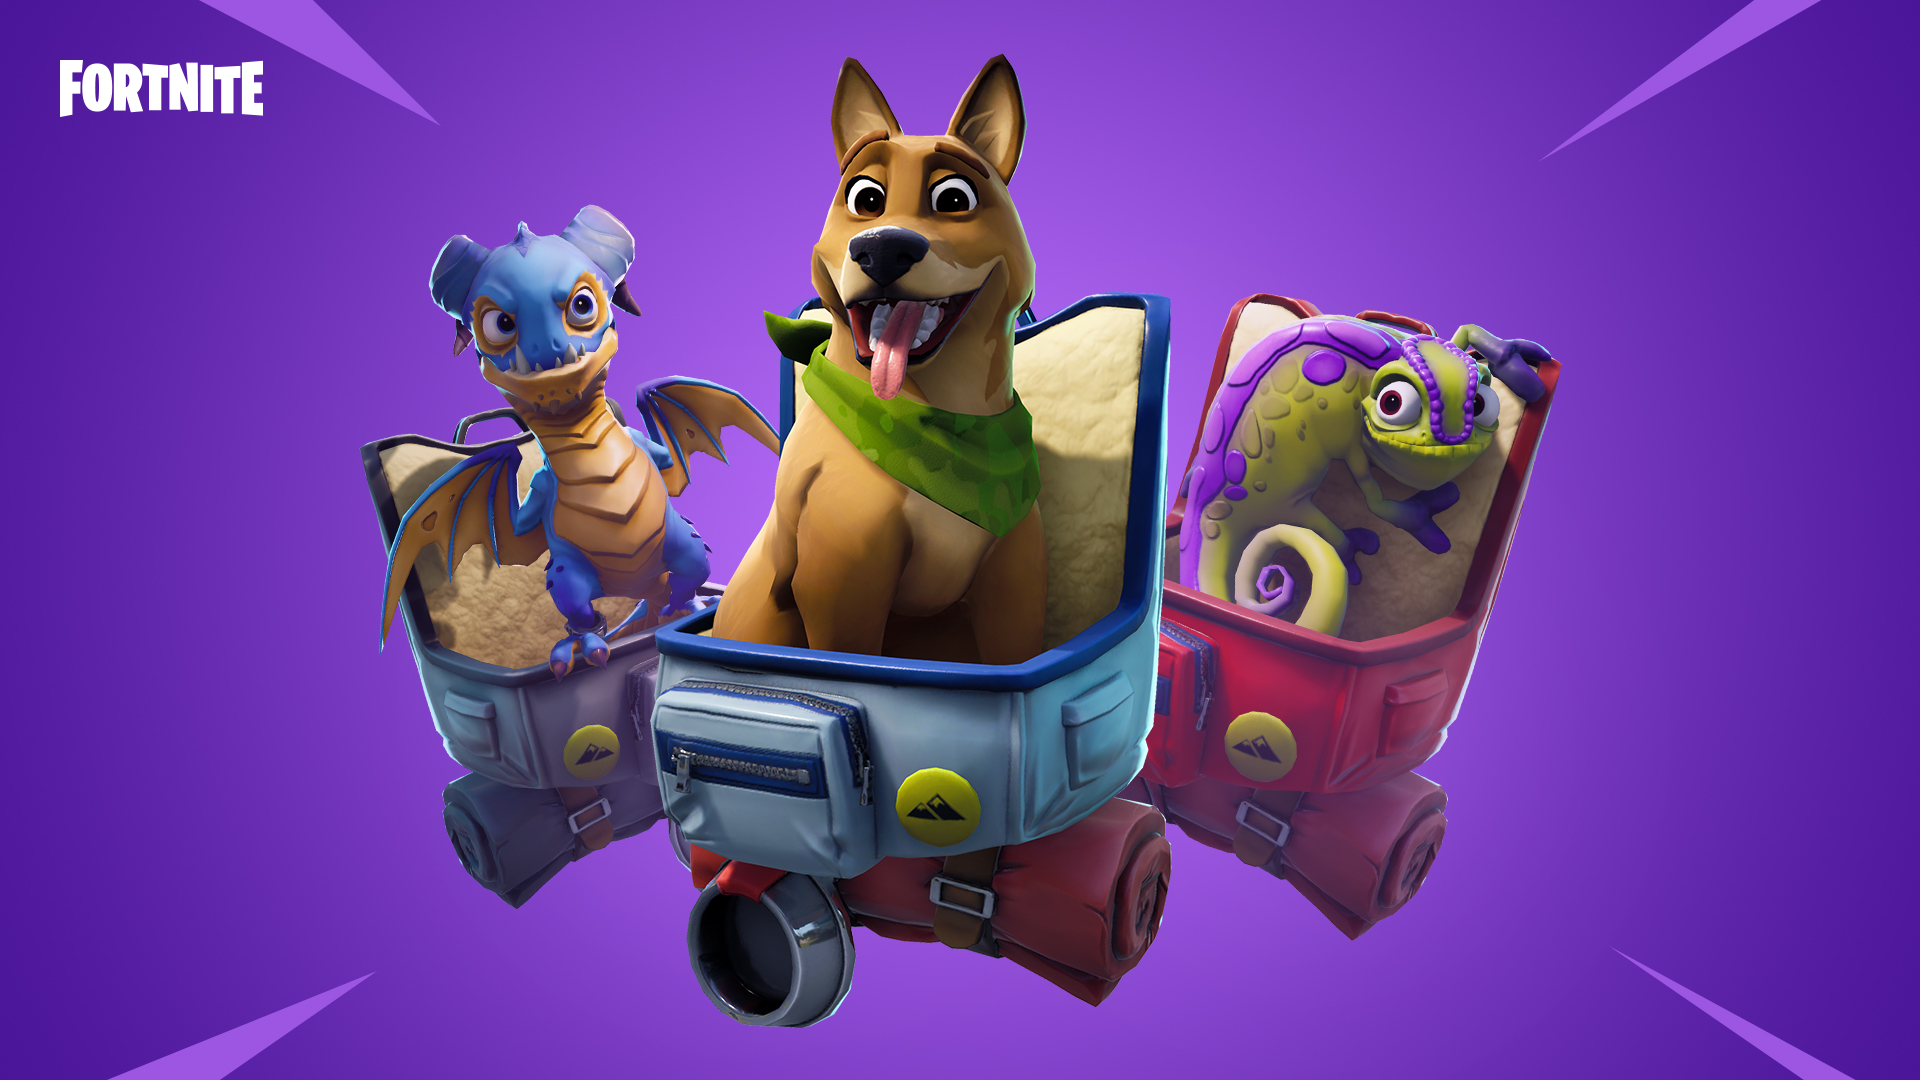 br06 social pets v2 jpg - fortnite play with others missions